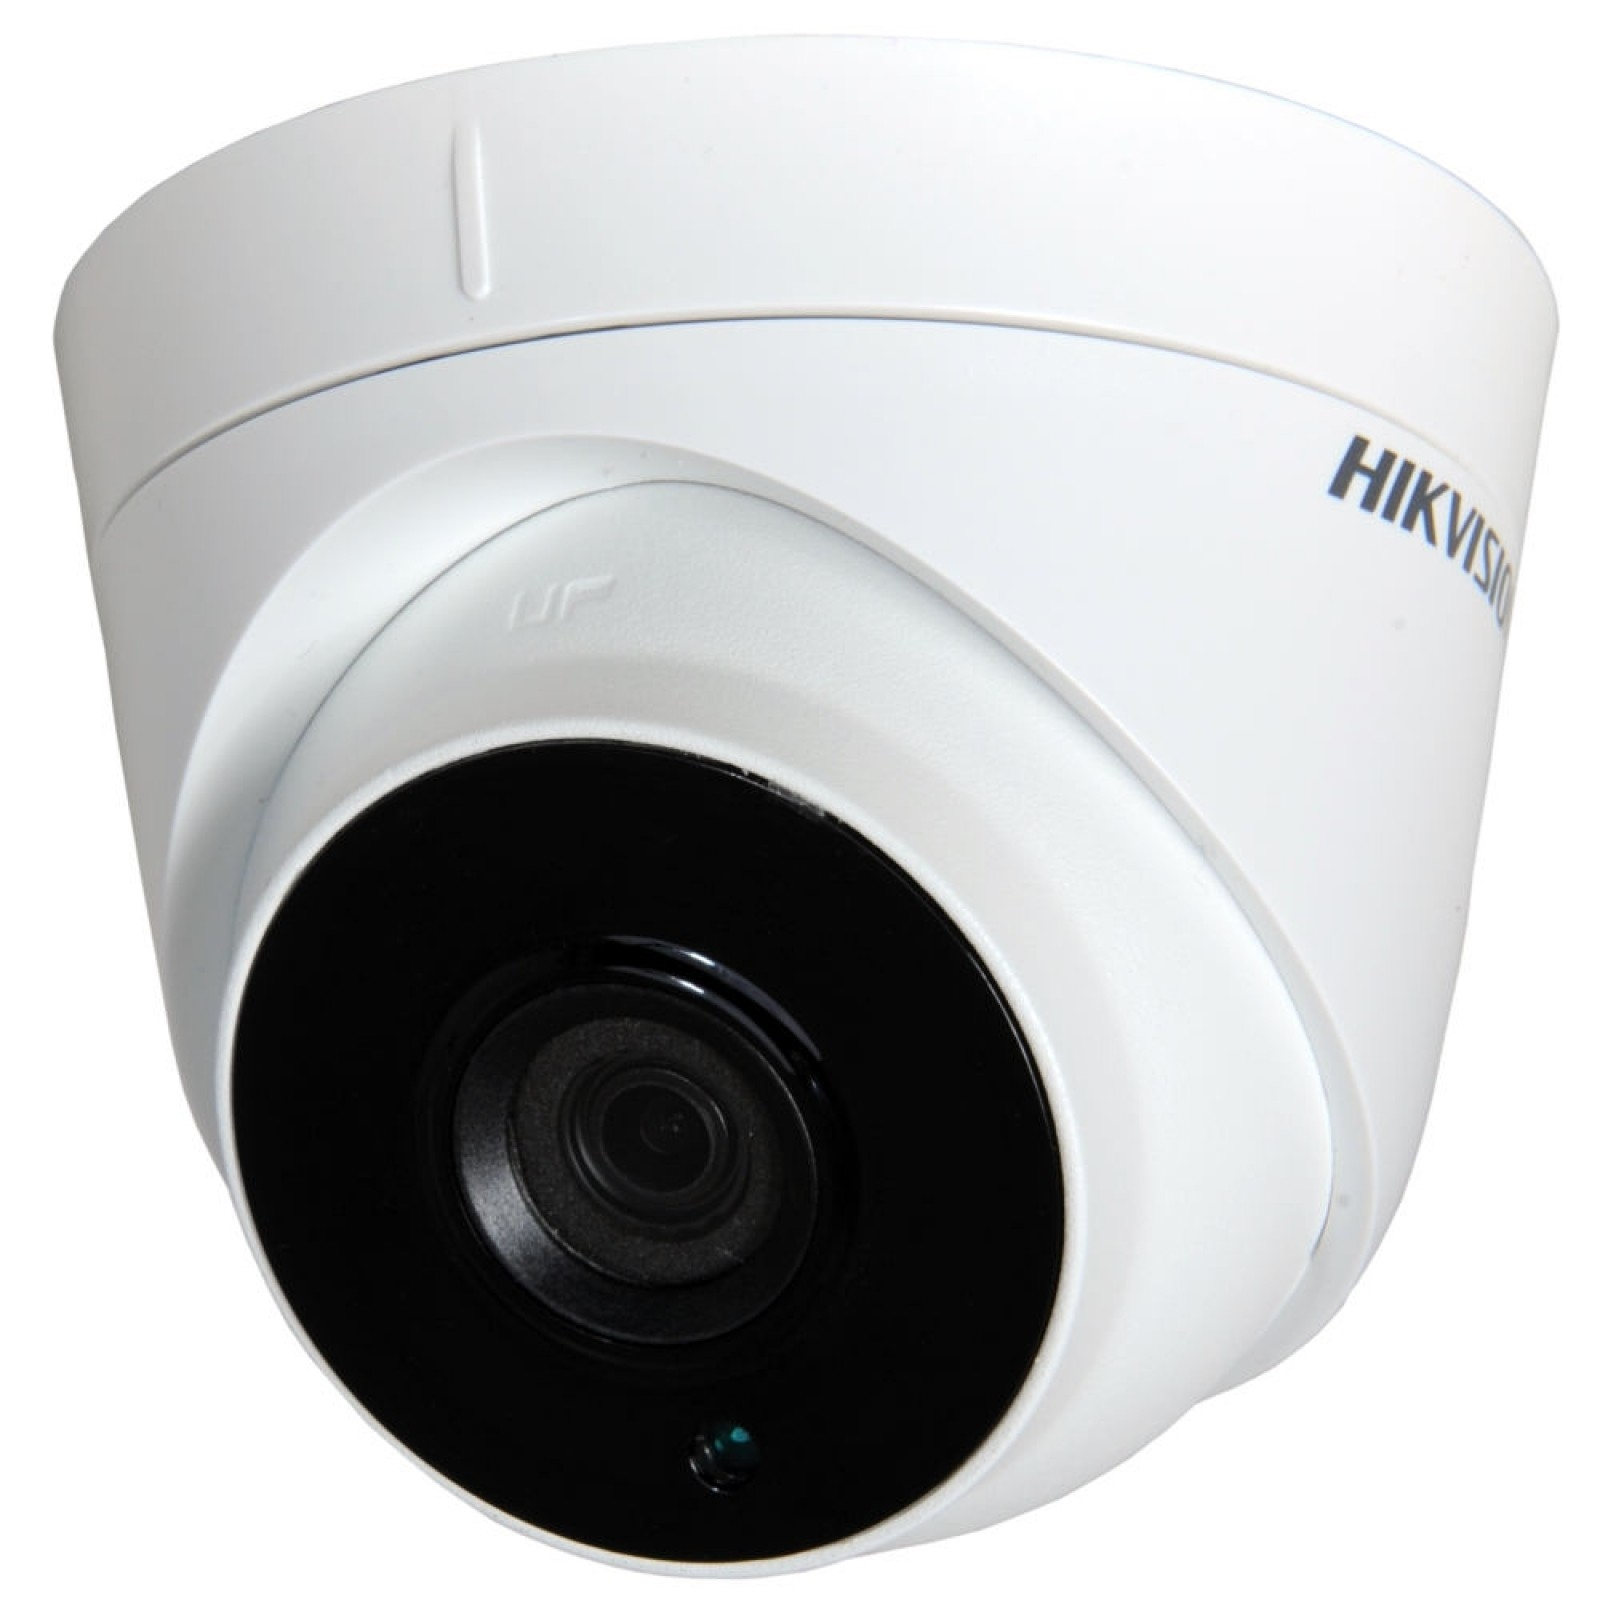 Picture of DS-2CE56H0T-ITPF 2.8mm 5MP Plastic Exir Dome